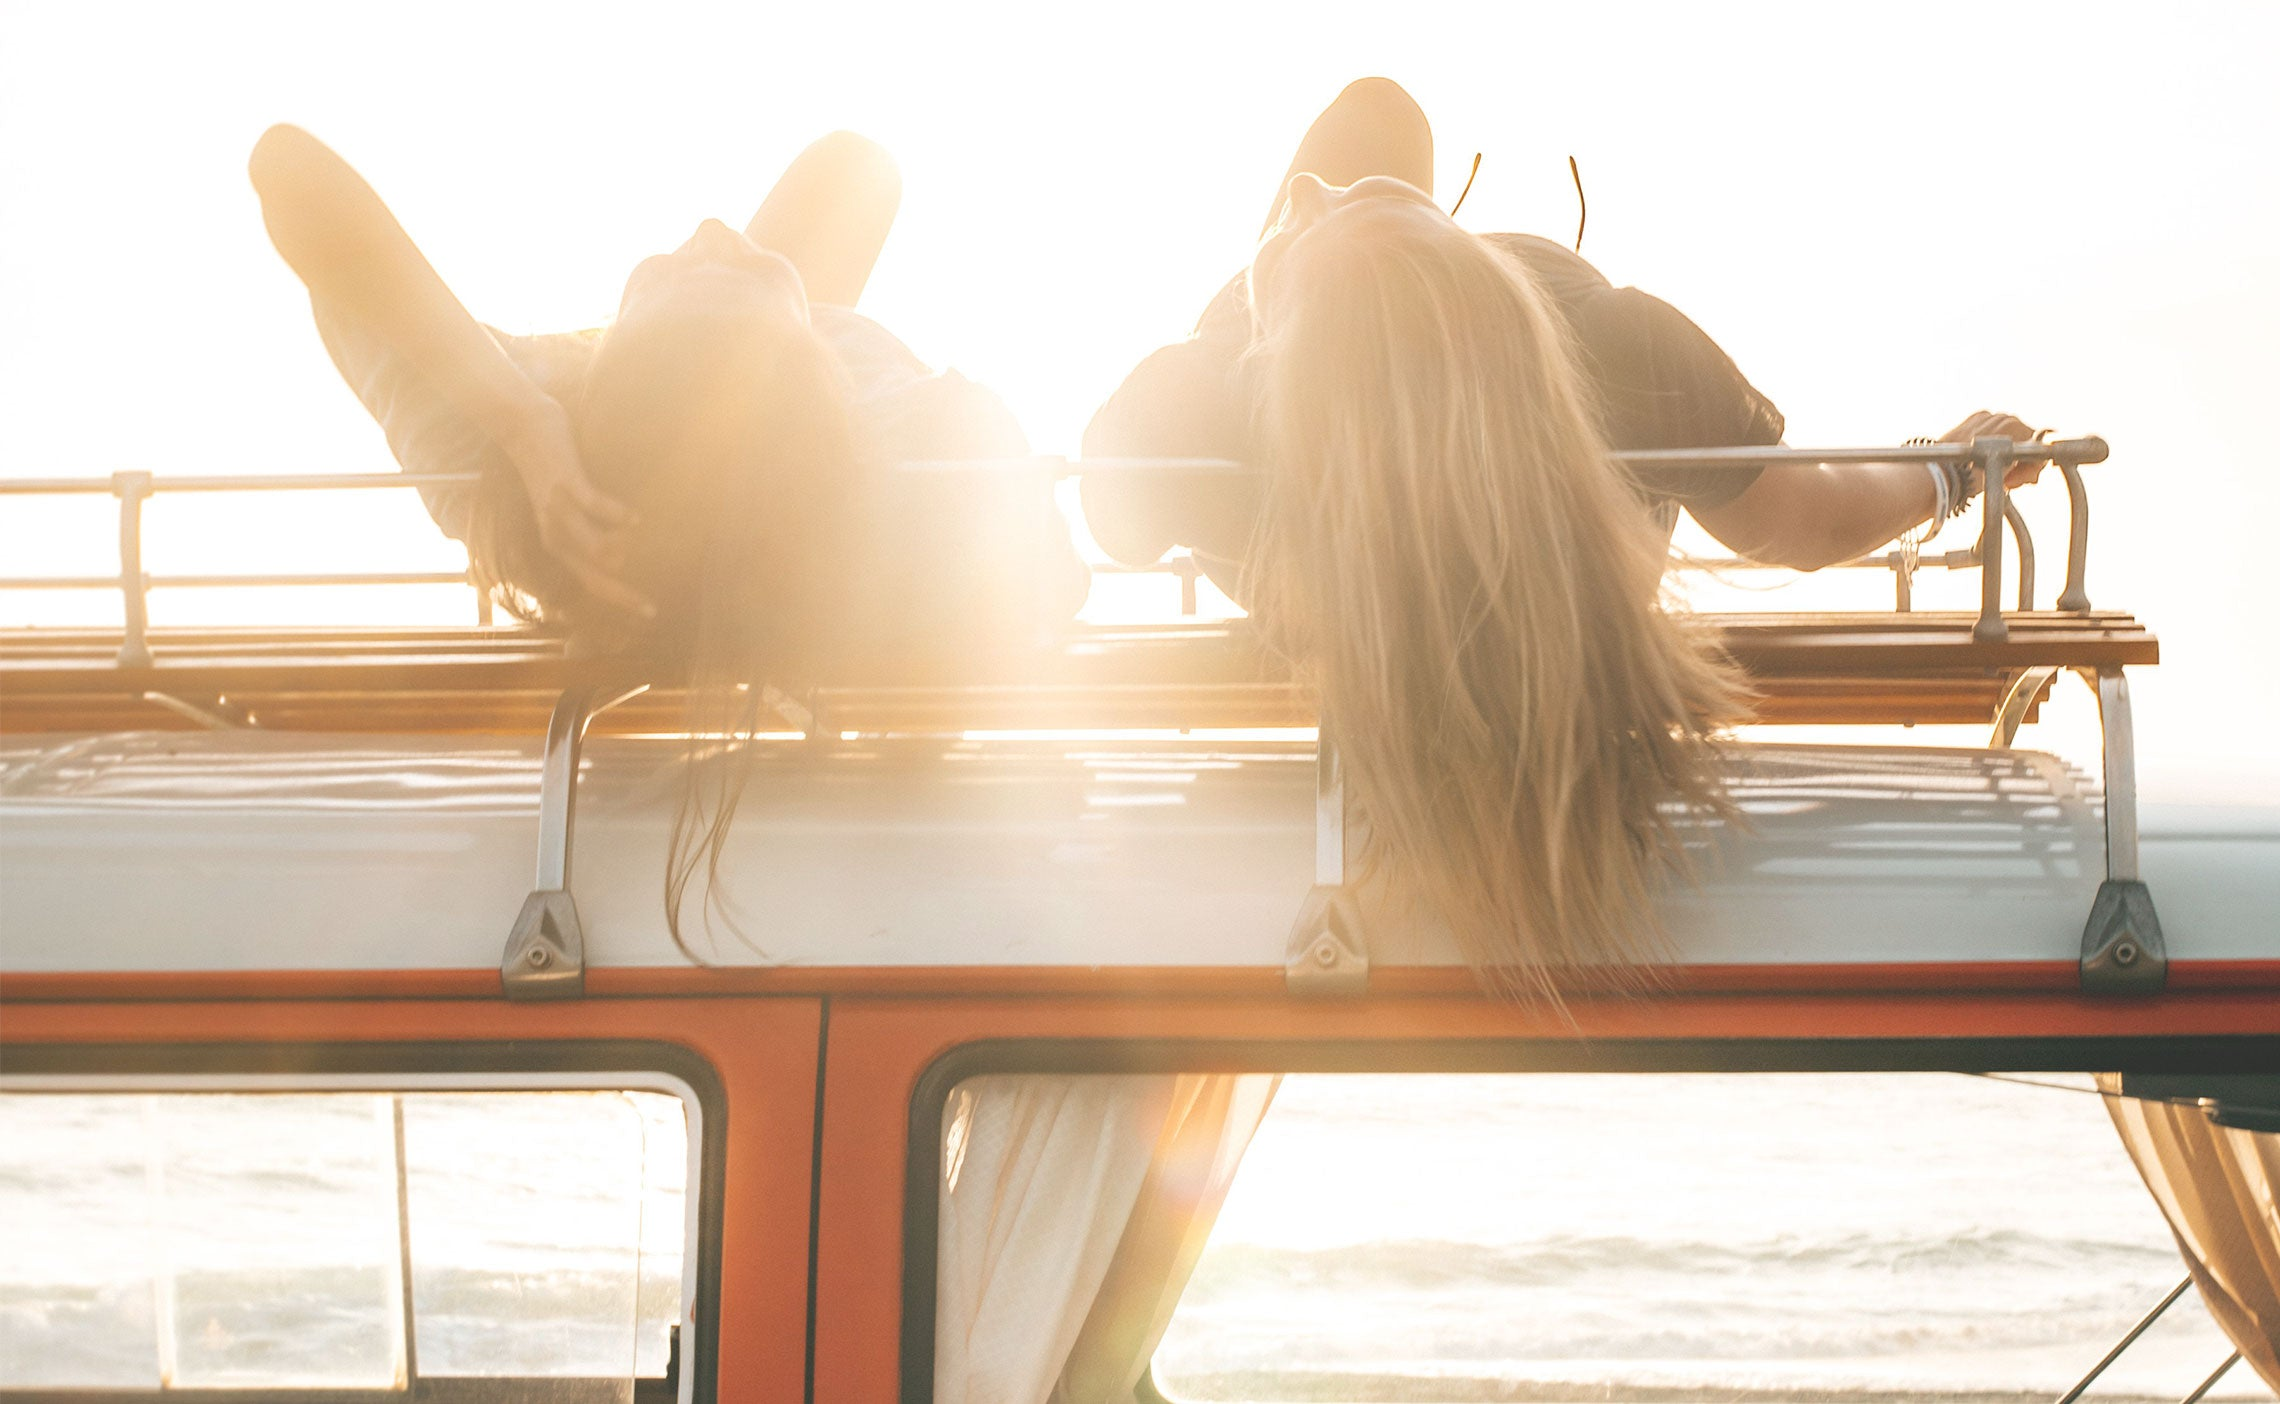 Two friends laying on top of a camper van roof watching the sunset over the ocean.